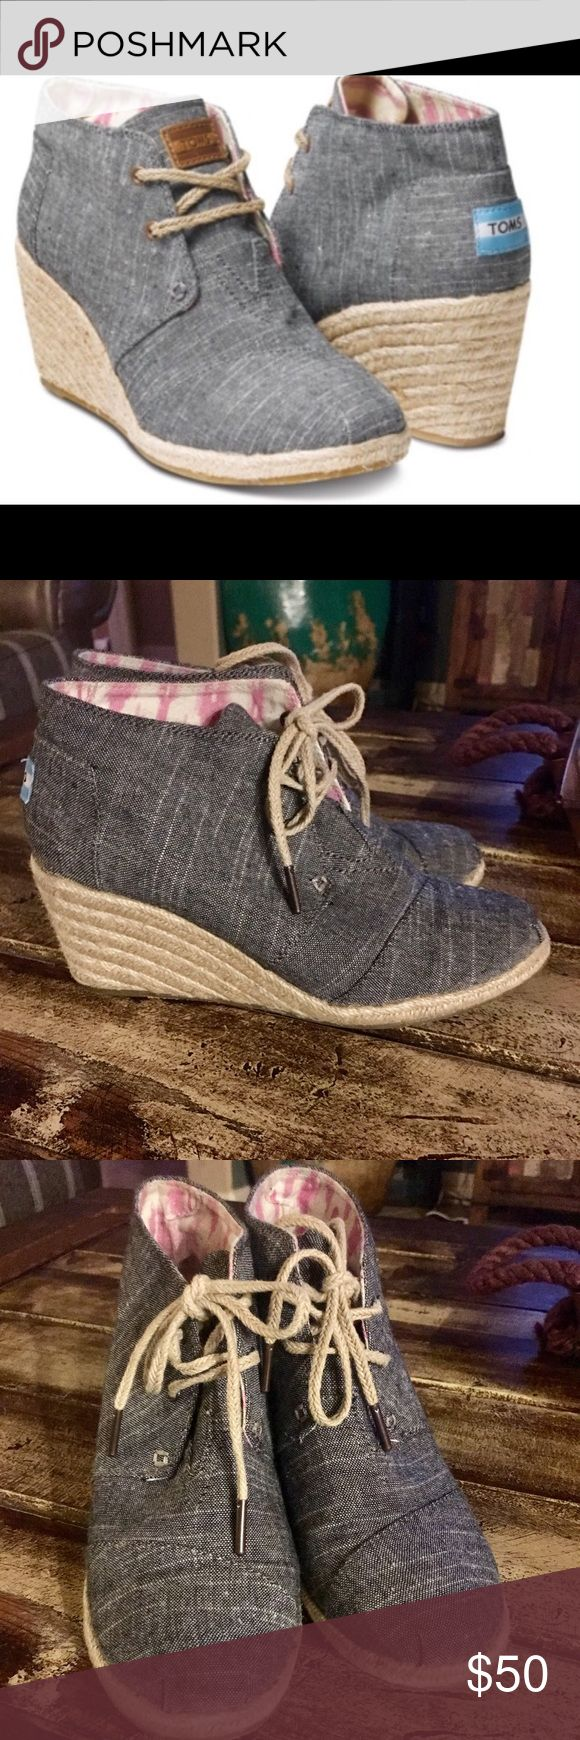 Toms Desert Wedges size 8 Toms Desert Wedges black Chambray size 8.  Only worn a couple of times.  Excellent condition.   No longer have the shoe box TOMS Shoes Ankle Boots & Booties